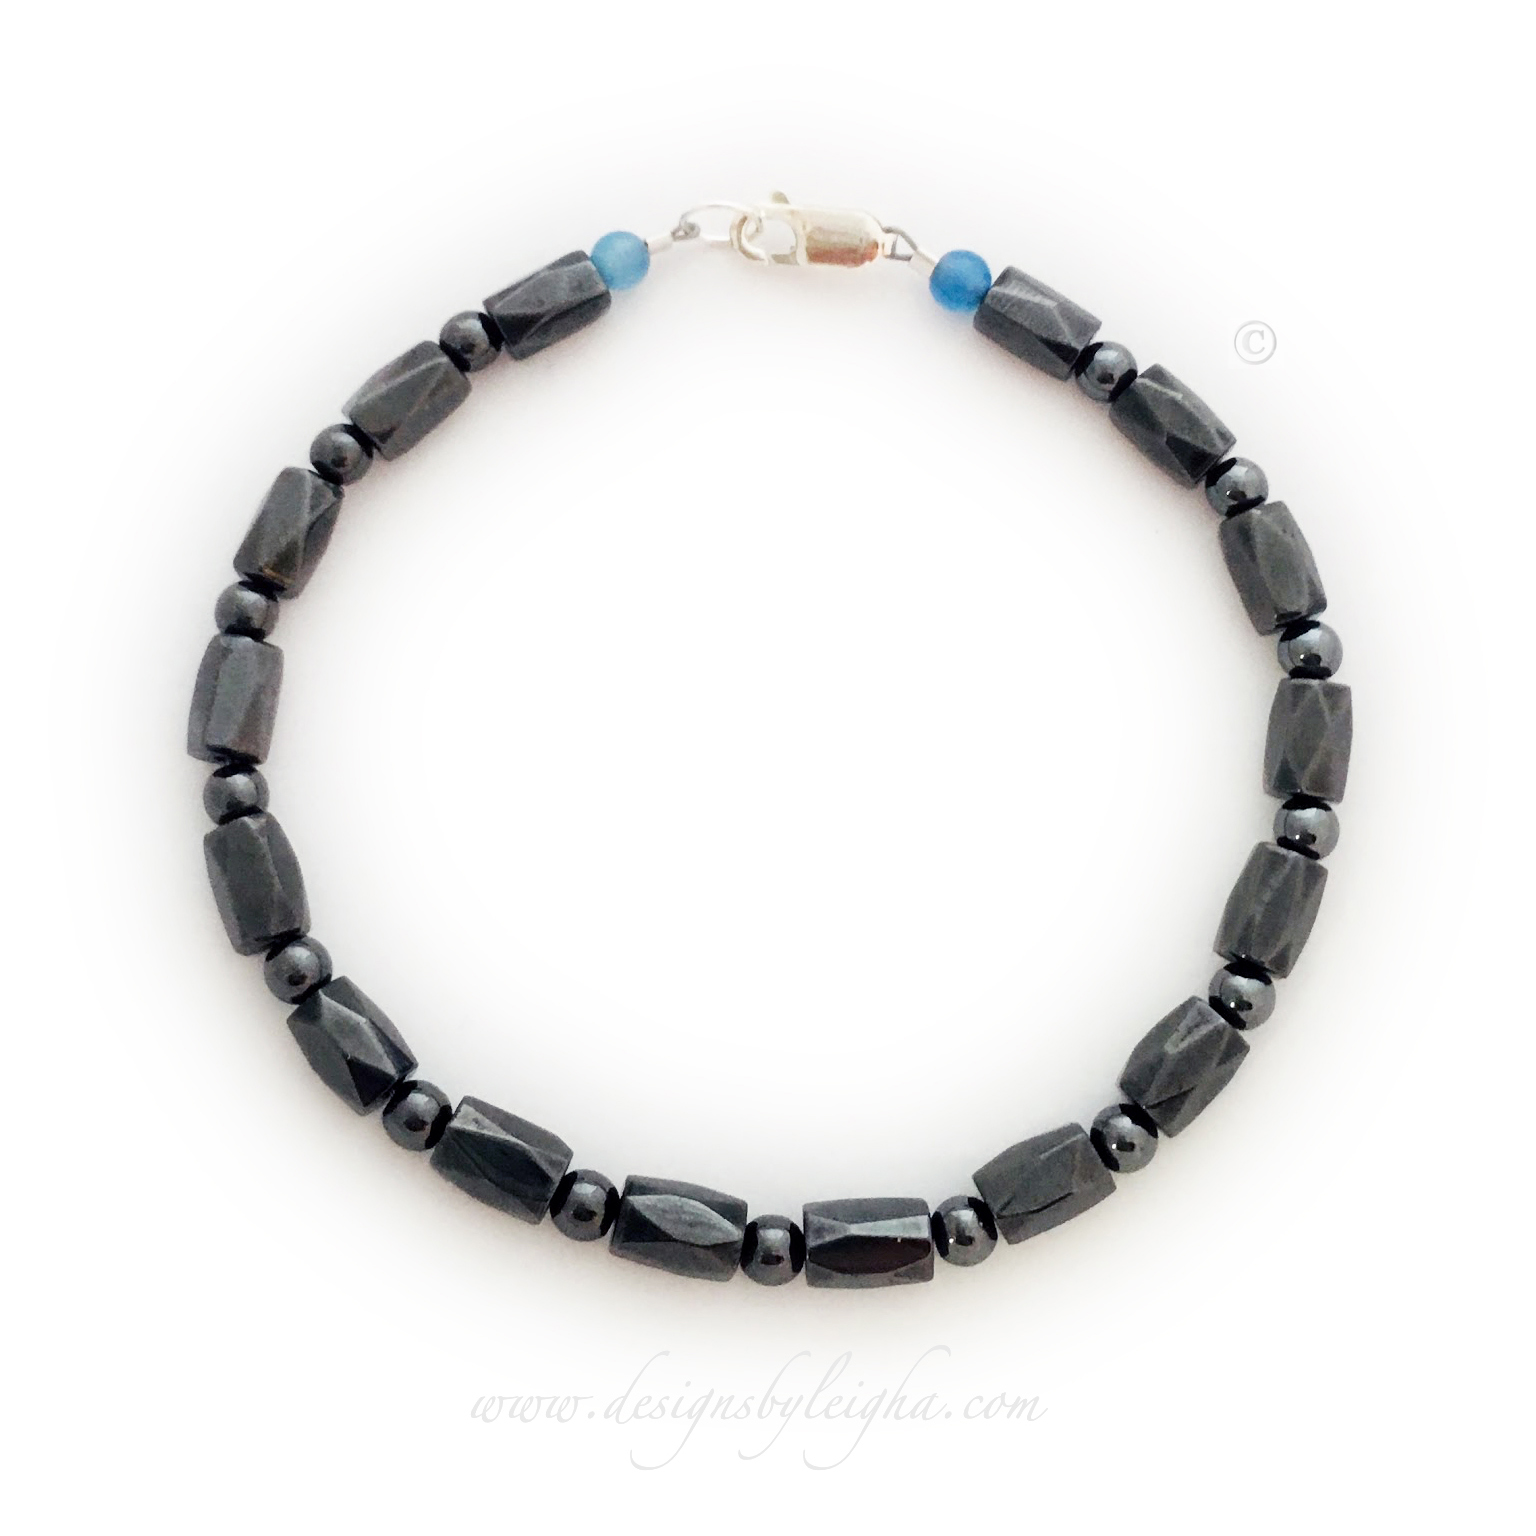 Magnetic Cancer Survivor Daddy Bracelet shown with Prostate Cancer Beads